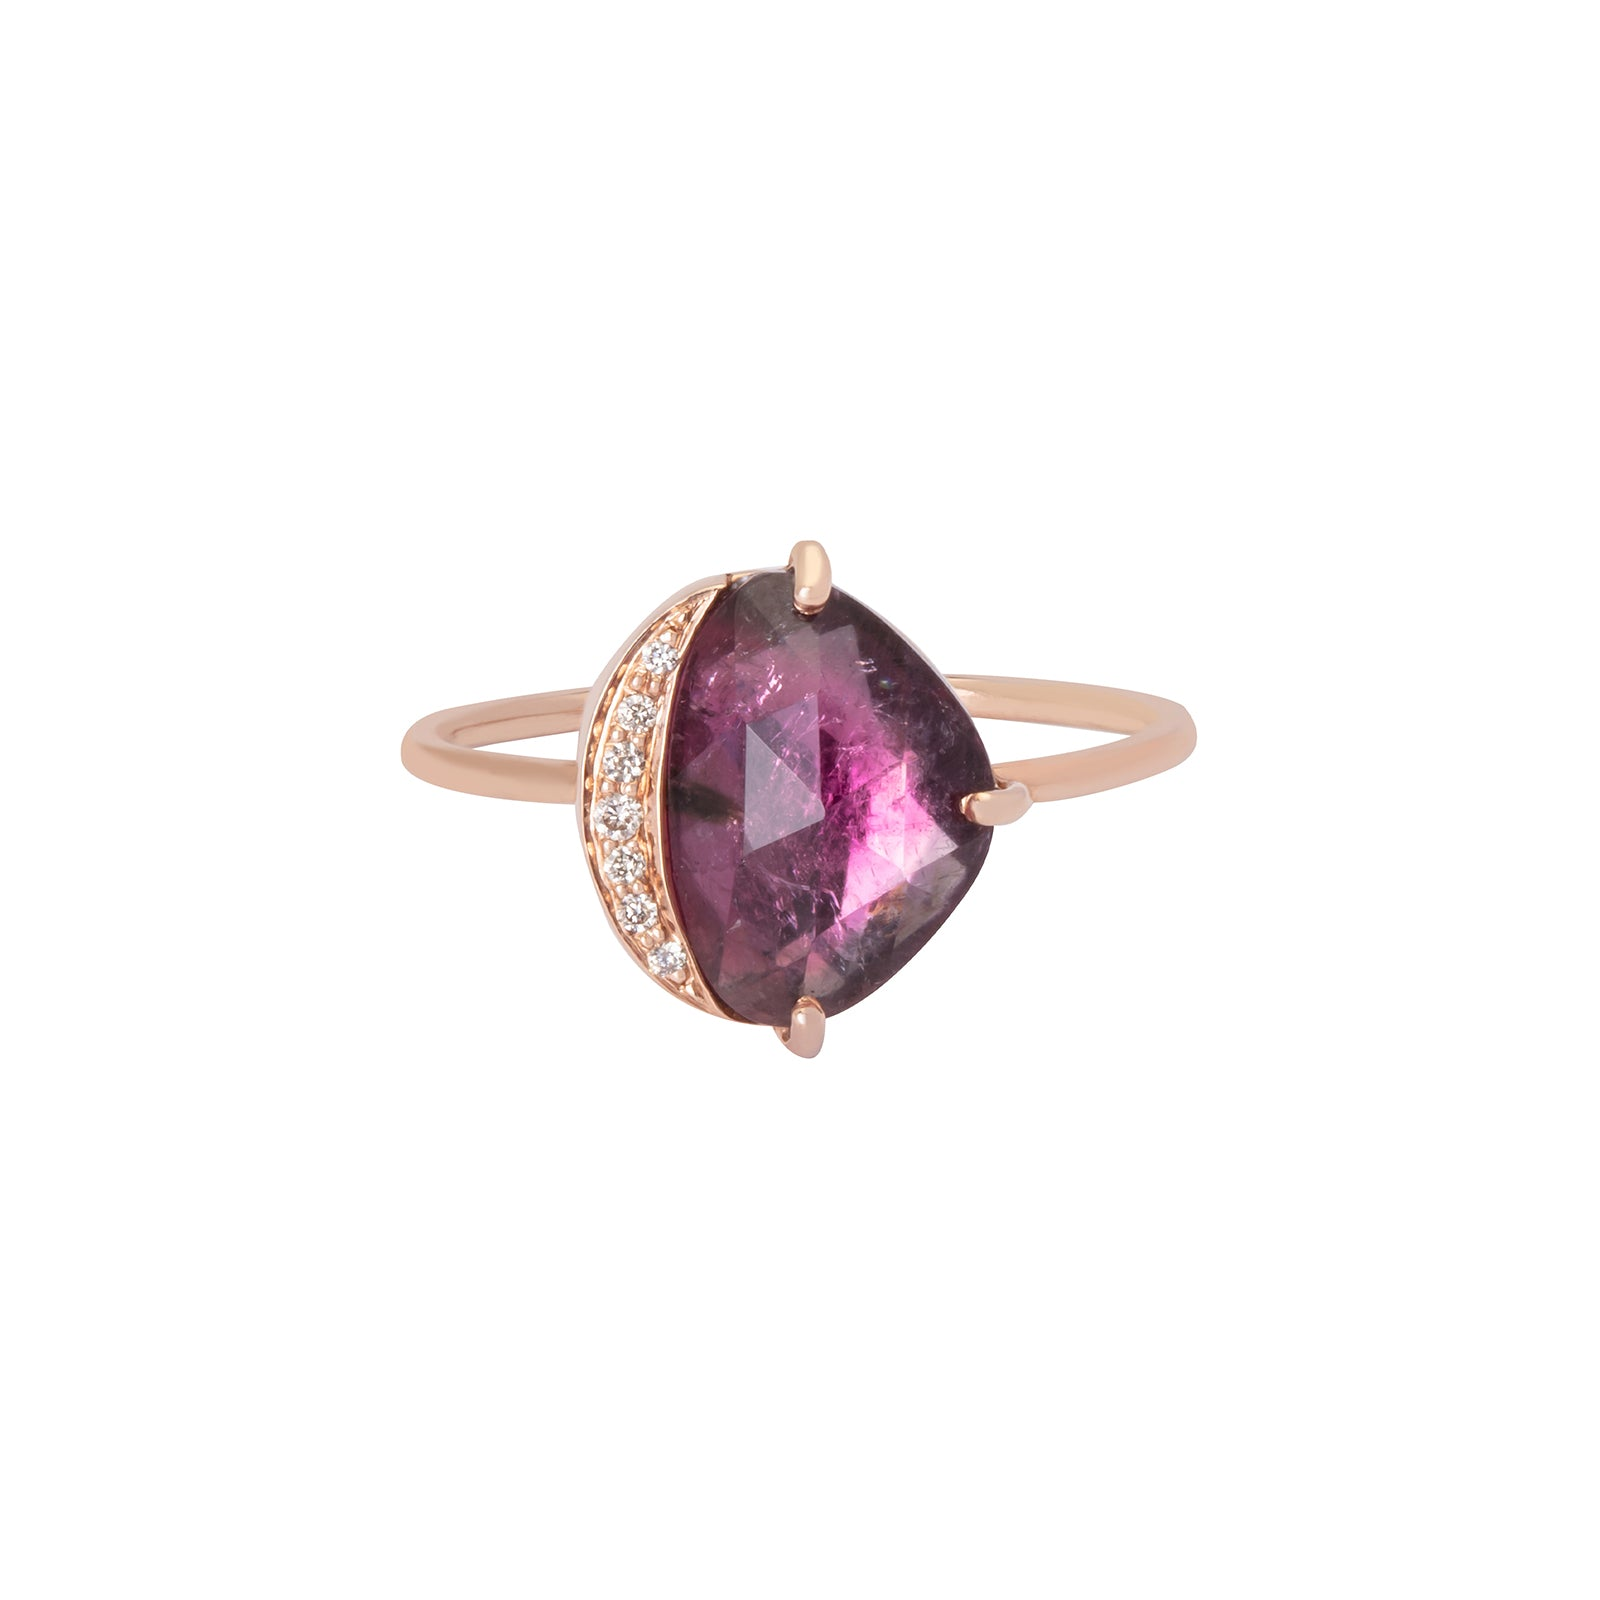 Celine Daoust Tourmaline & Diamonds Healing Ring - Rings - Broken English Jewelry